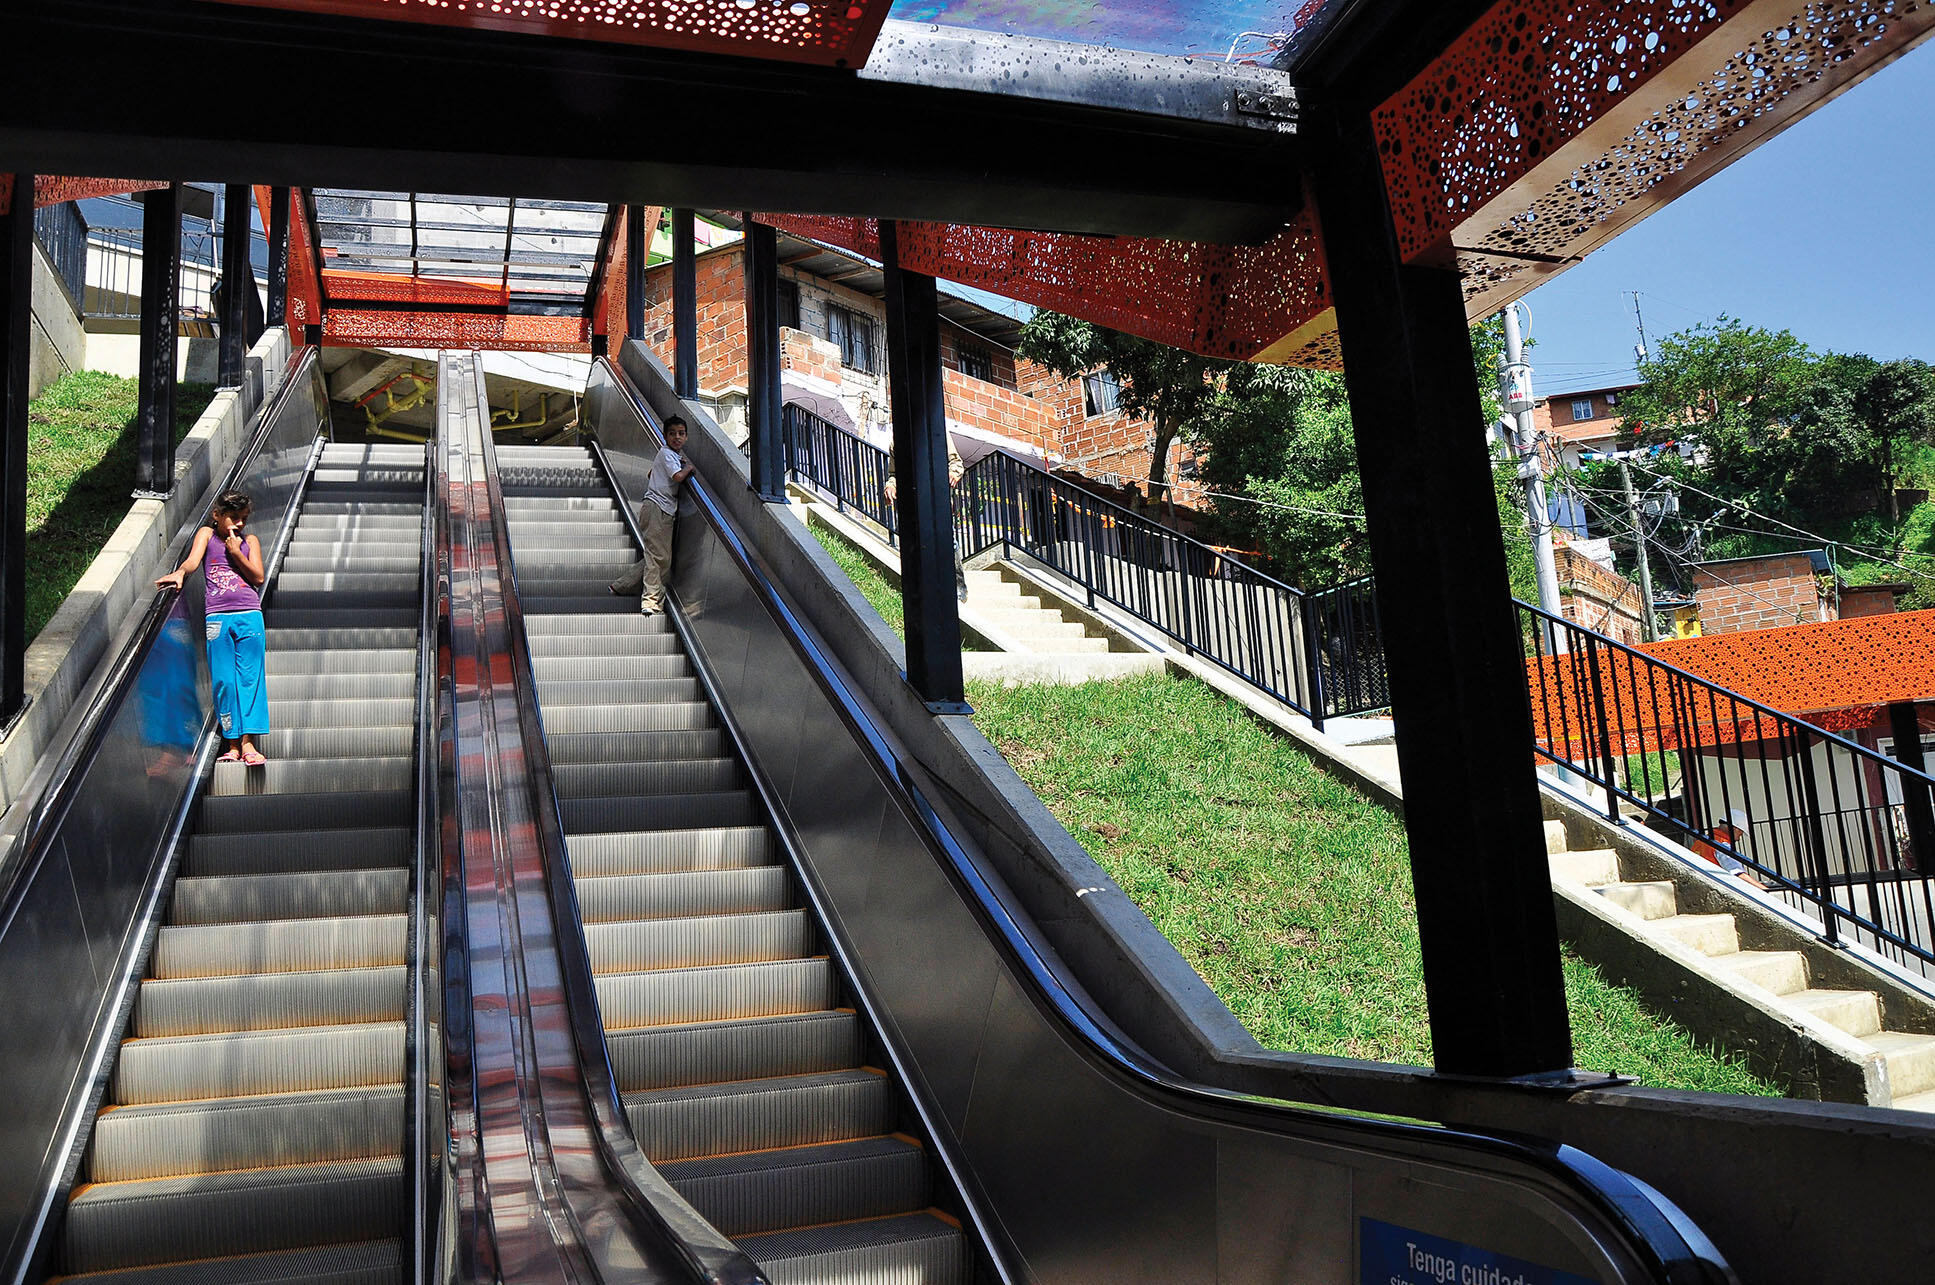 One of the escalators built to serve poor hillside communities in Medellín. (Photo by Mariana Gil/EMBARQBrasil.)